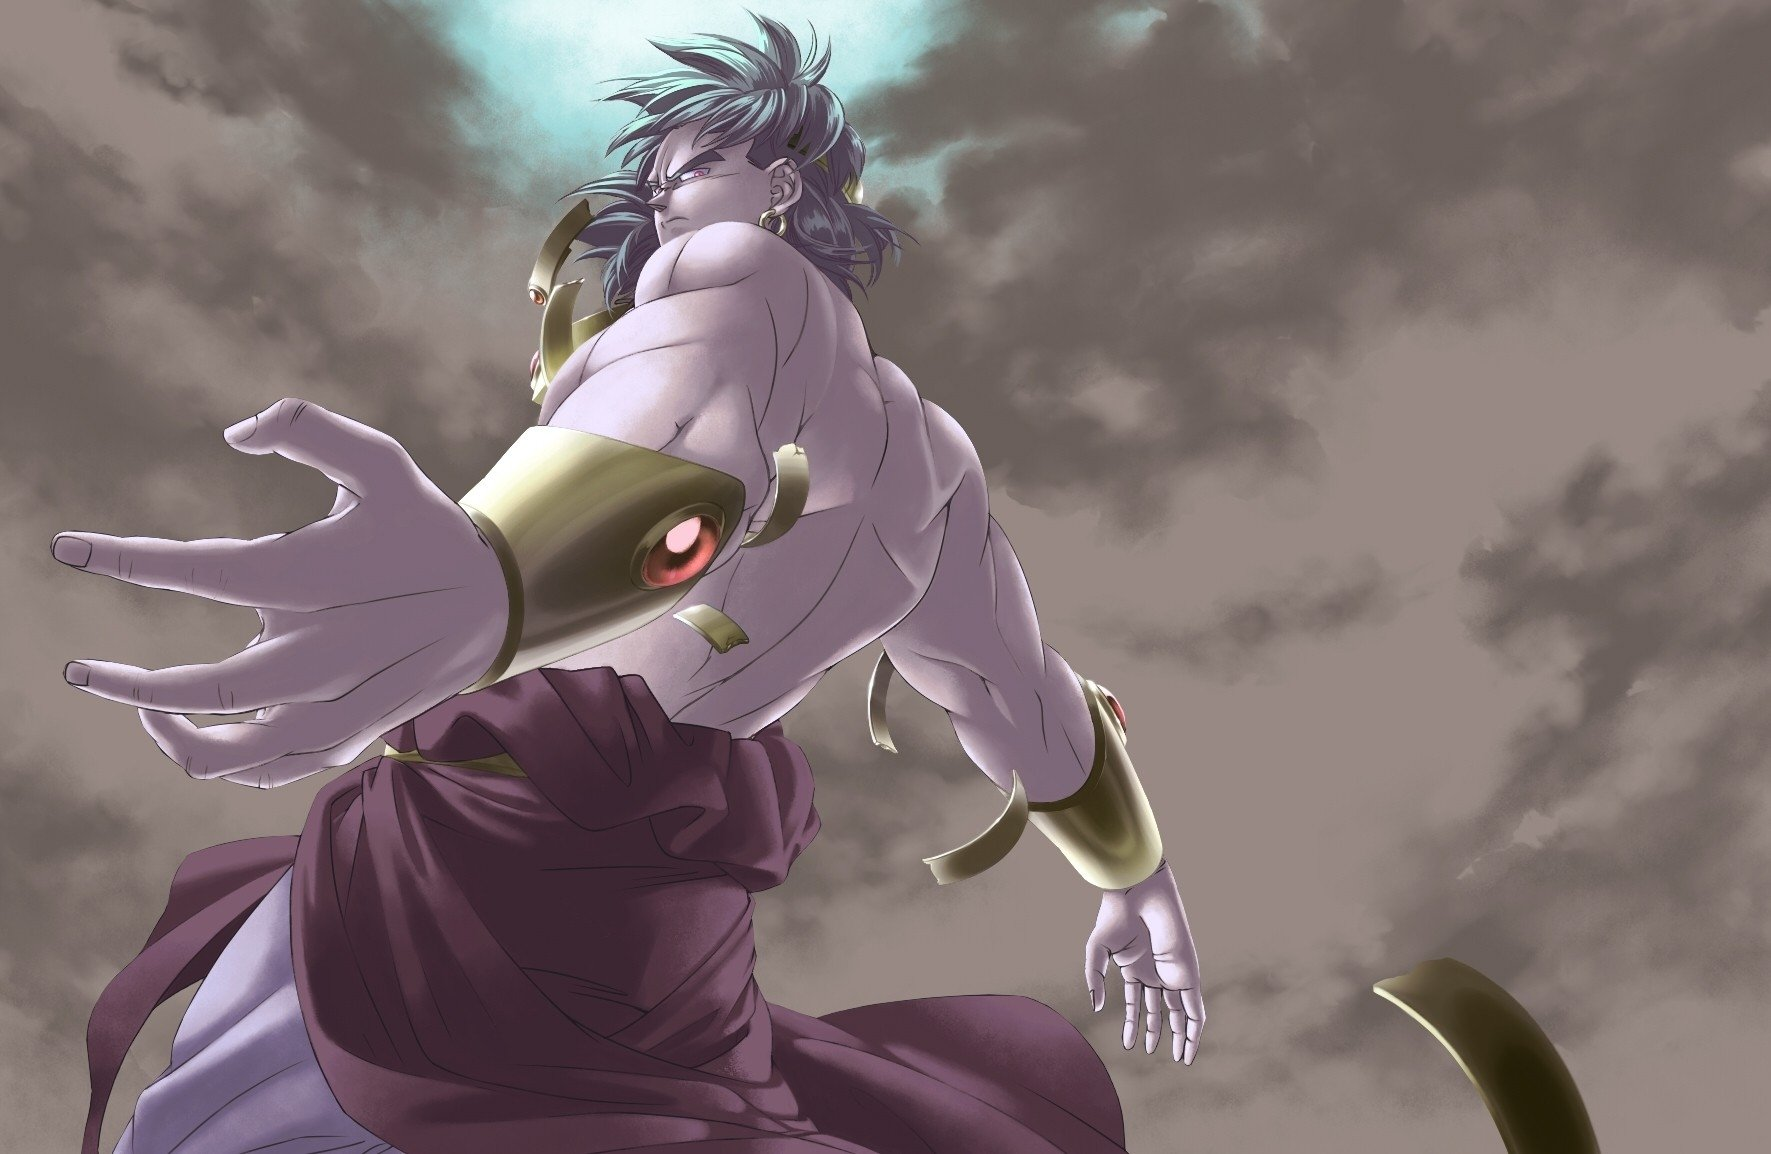 108 Broly Dragon Ball Hd Wallpapers Background Images